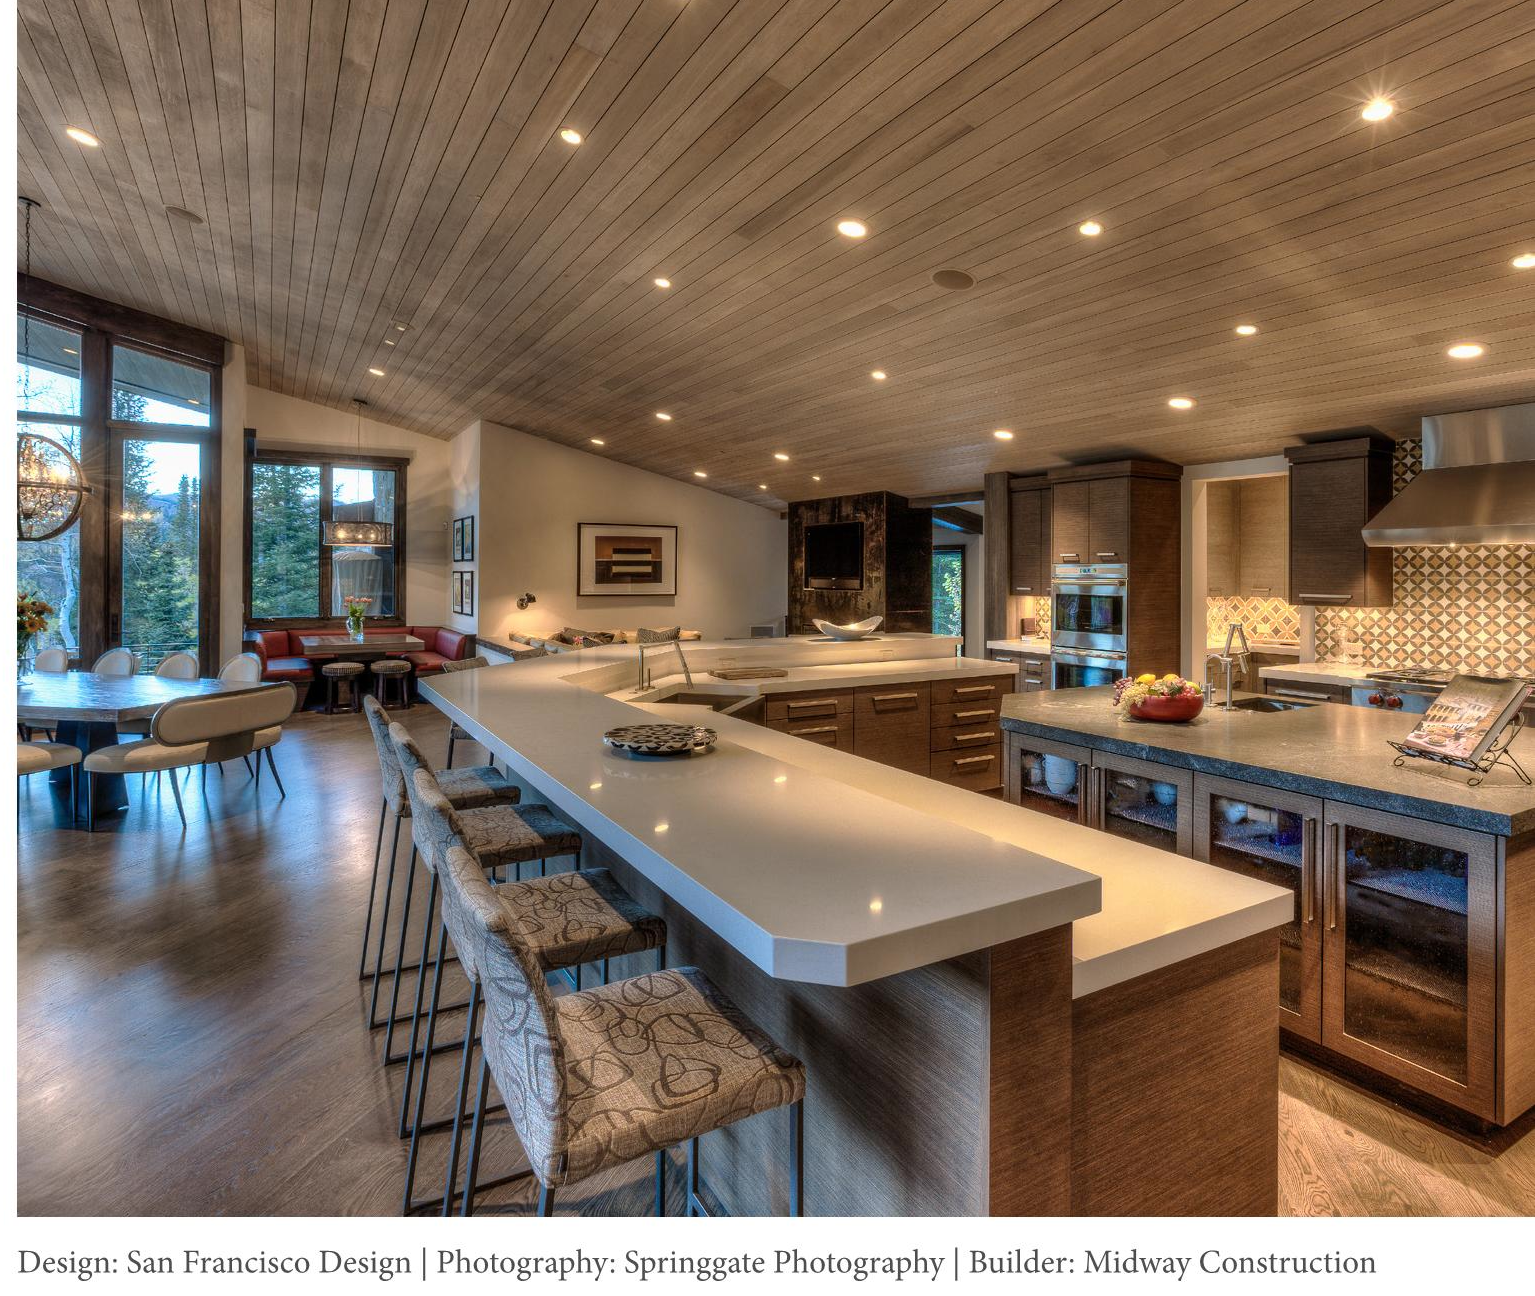 Home Ward Design Utah: Park City Interior Designers